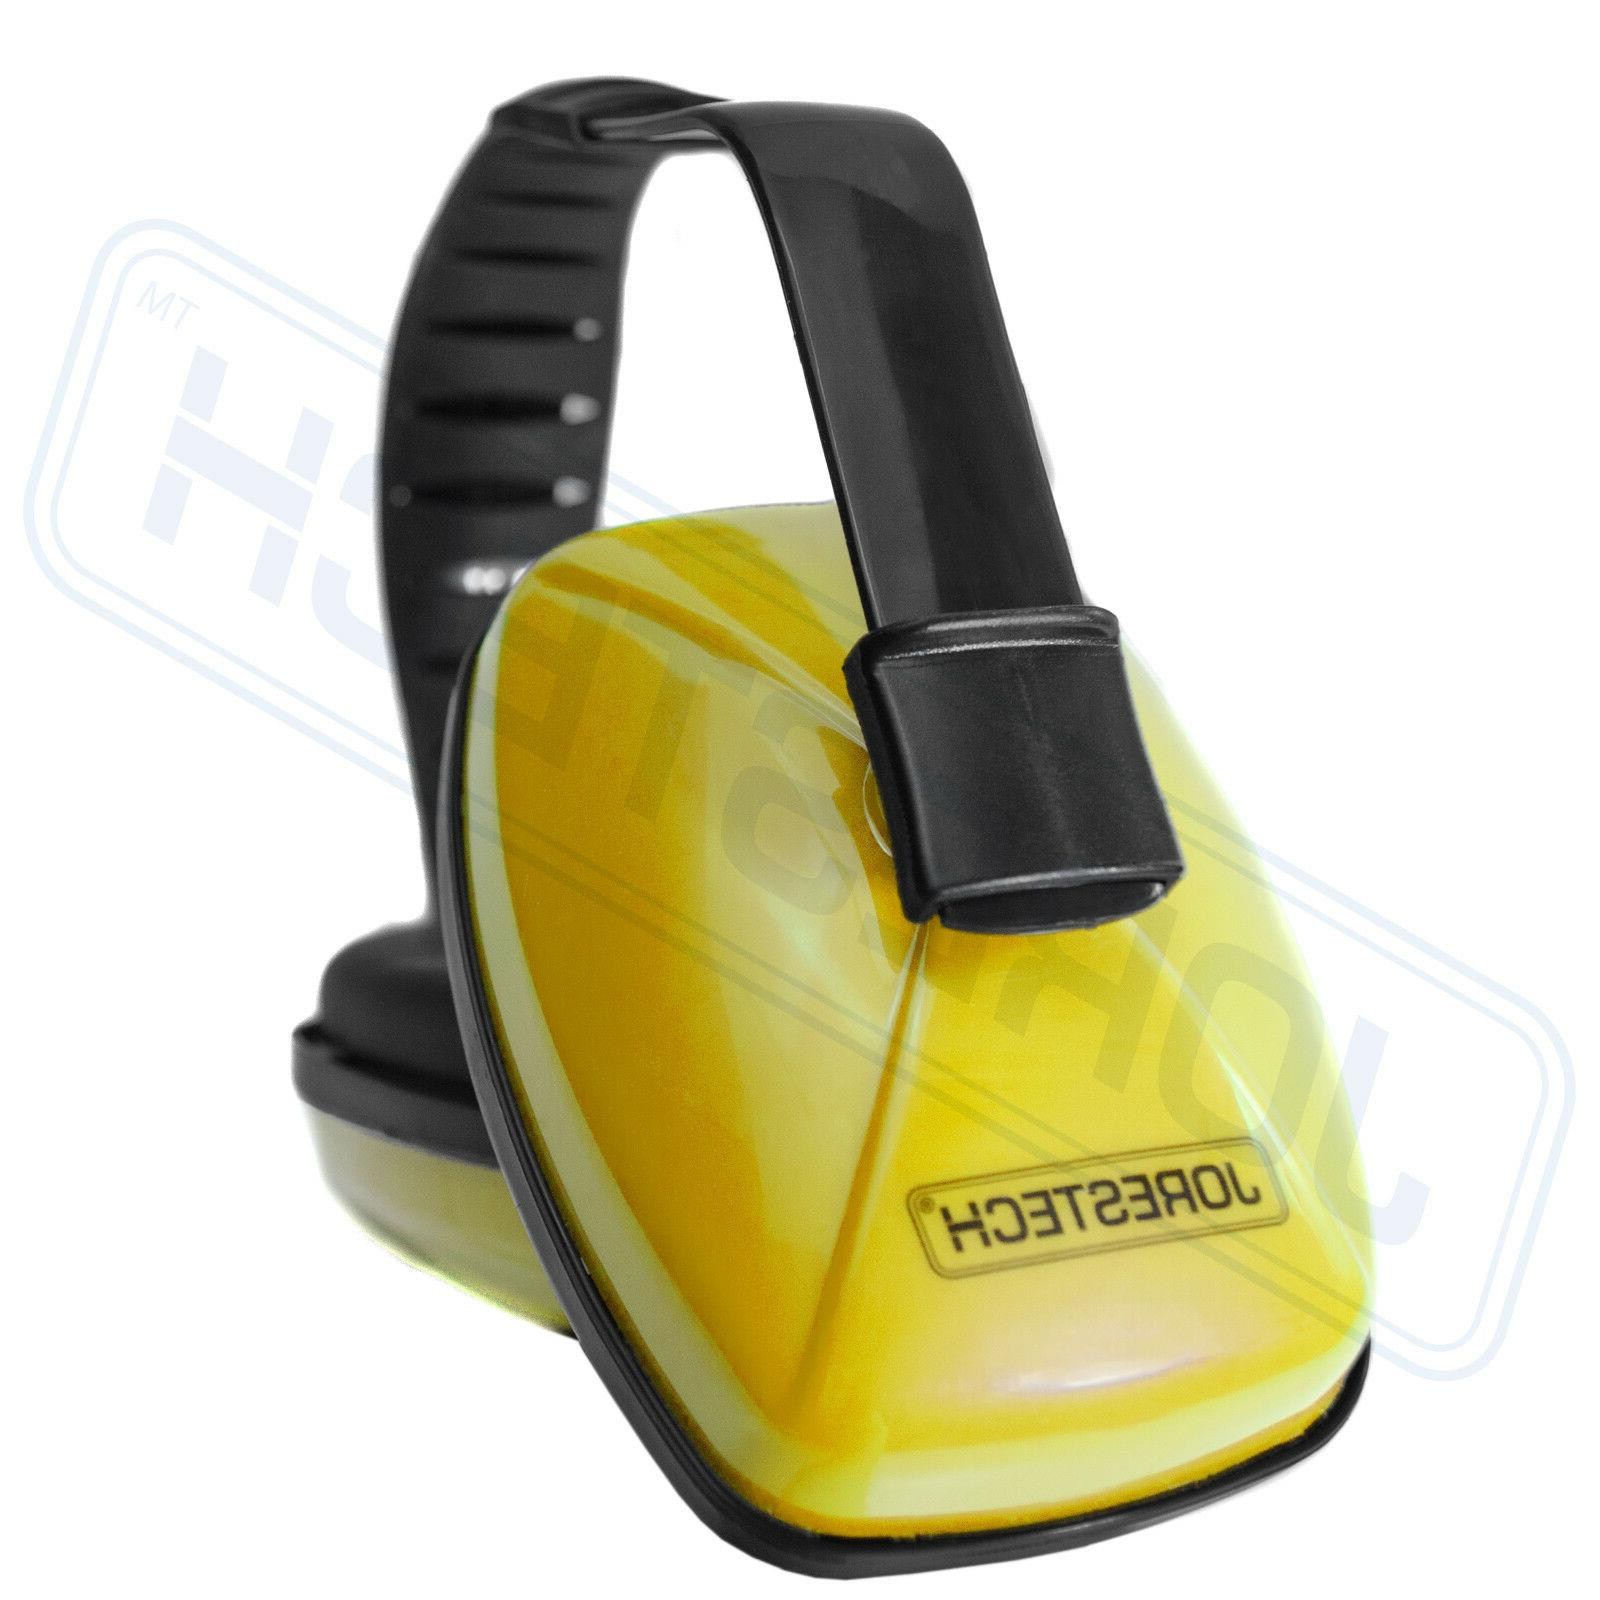 Hearing Protection Construction Noise Jorestech